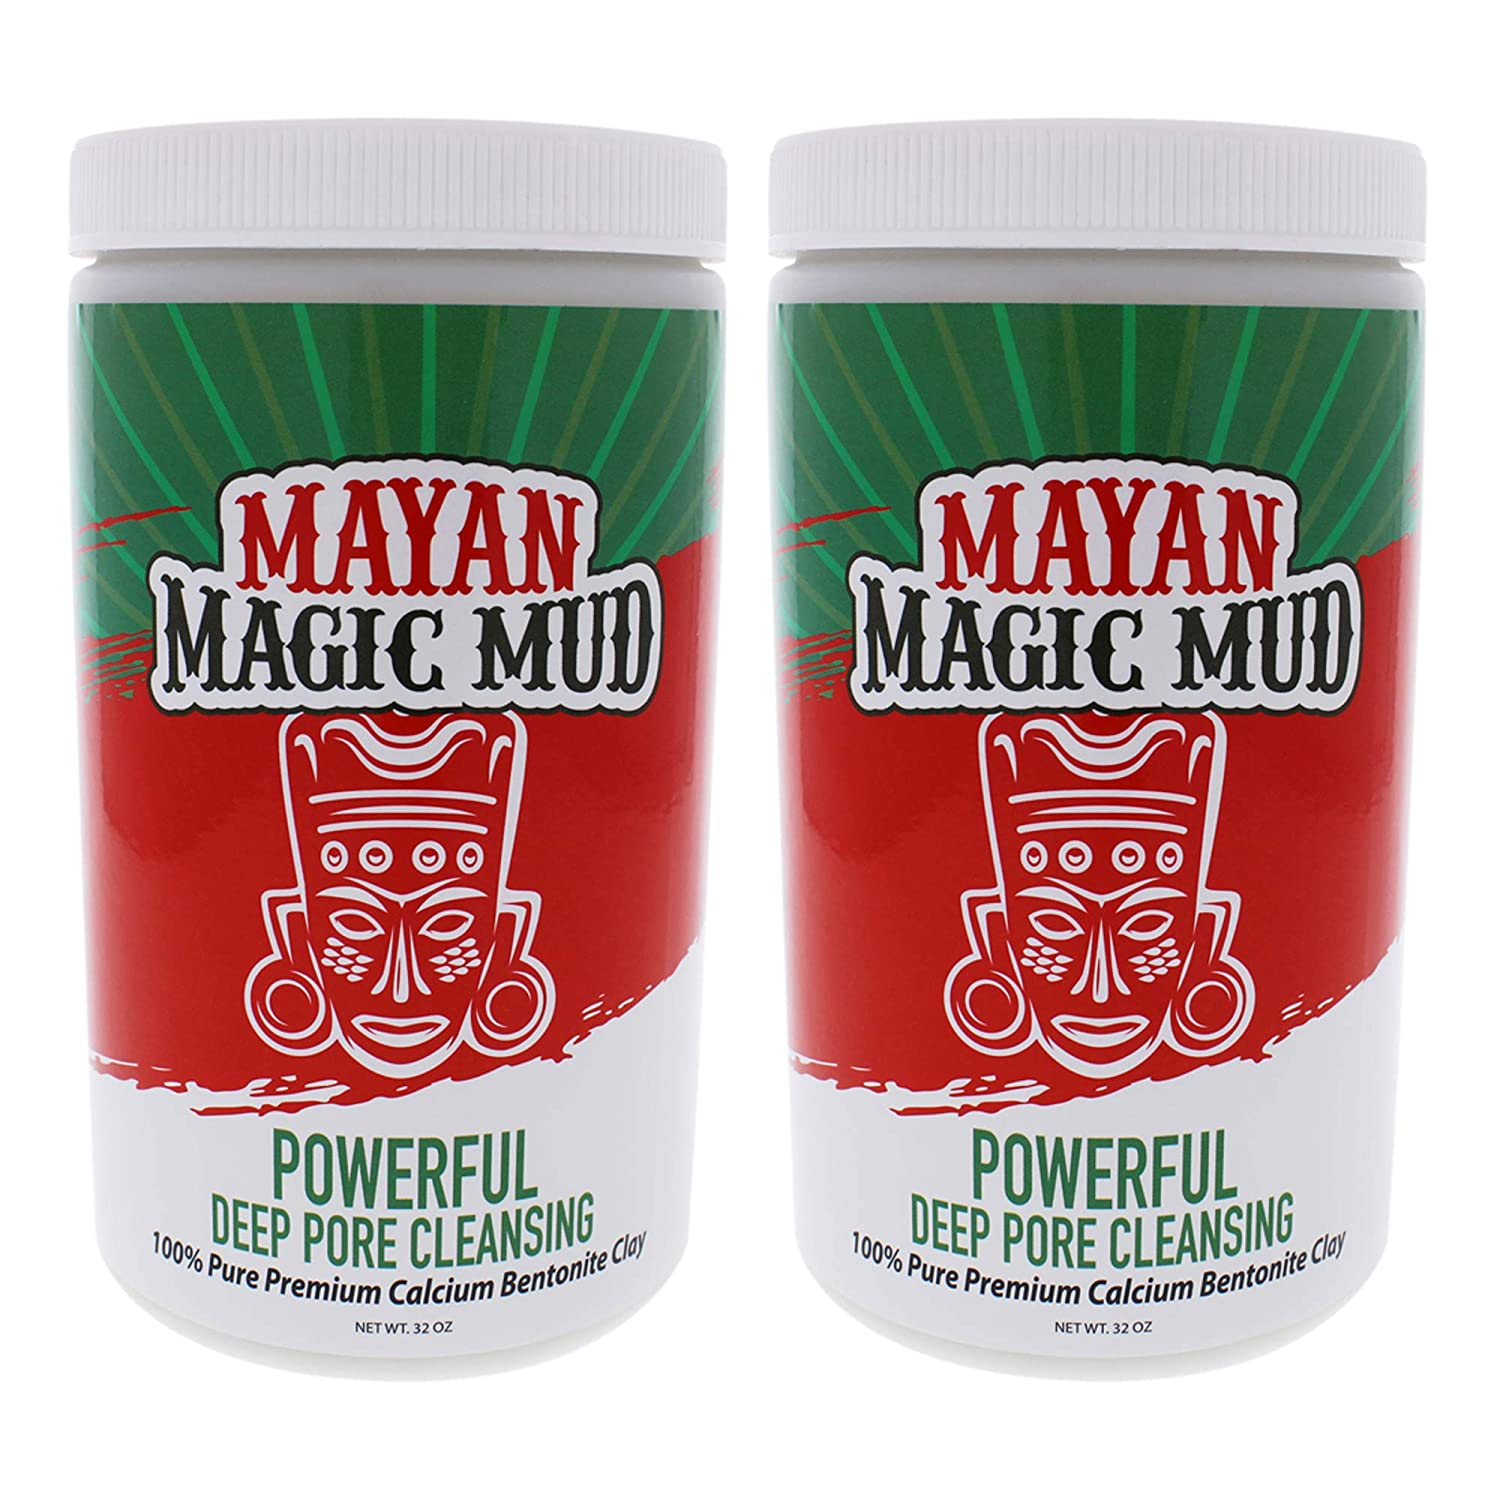 Mayan Magic Mud Powerful Deep Pore 10 Cleansing Body Mask Facial Sales of SALE items from new works Choice